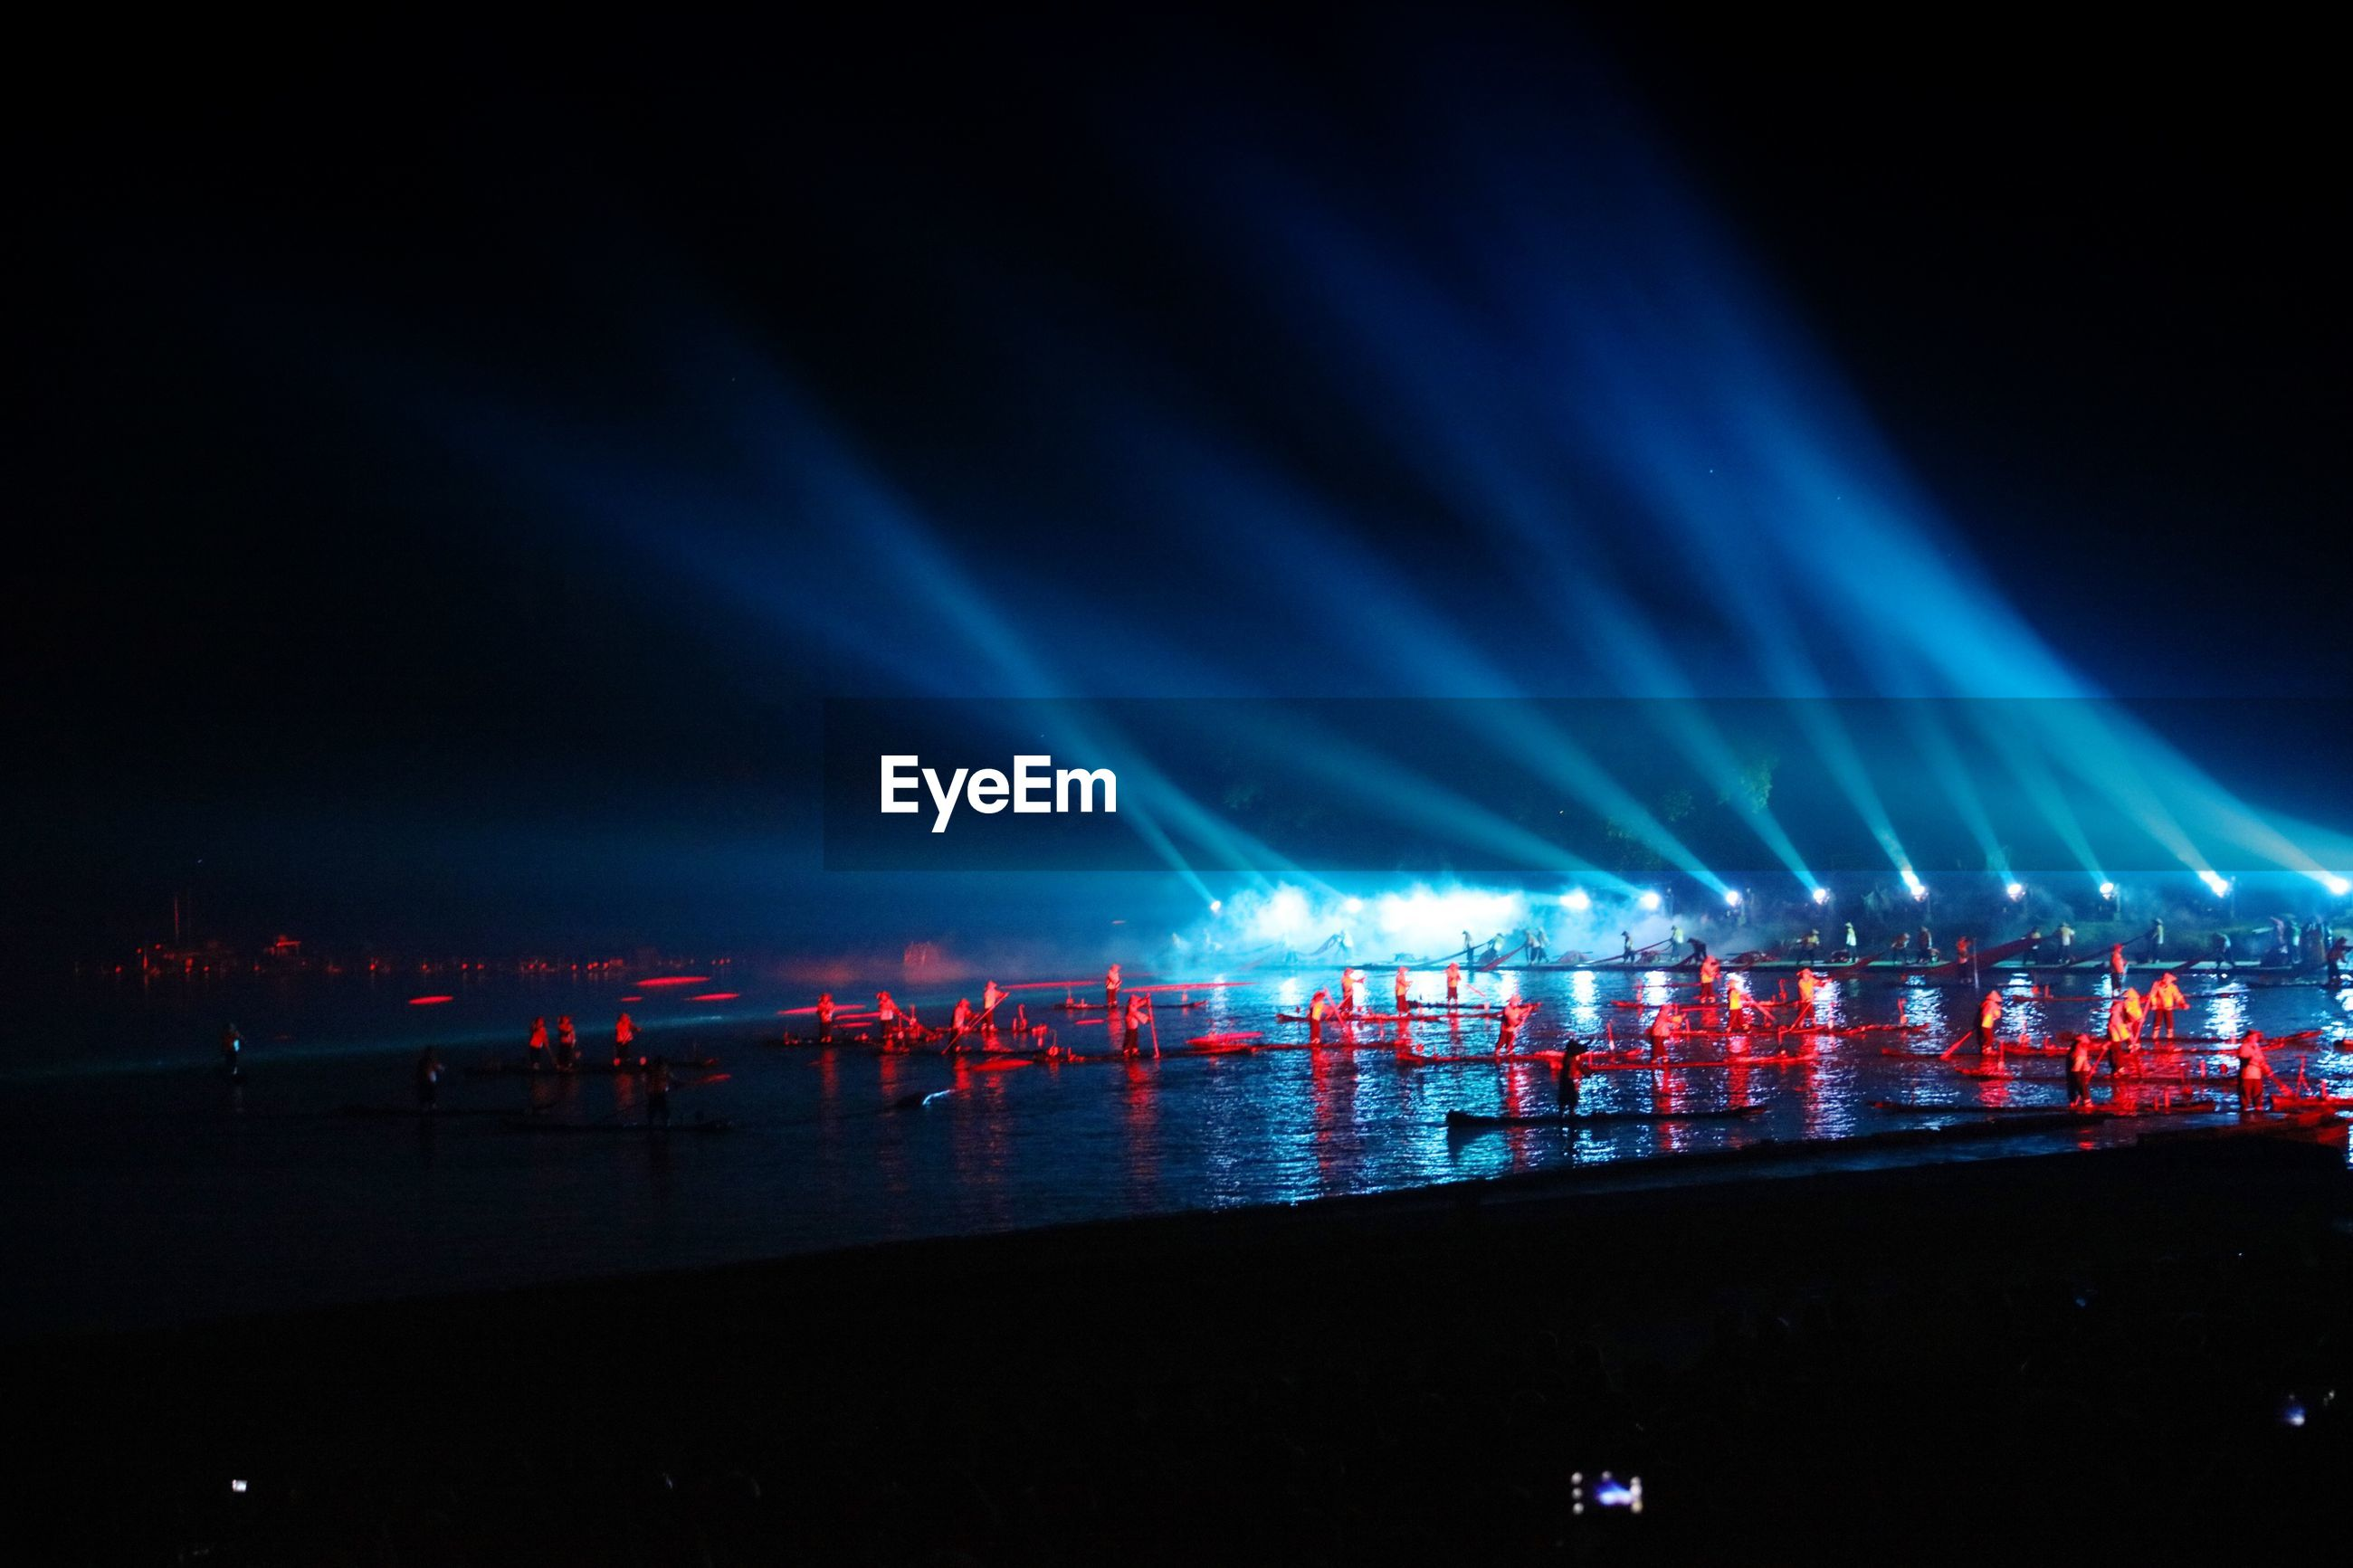 Illuminated red boats moored at river during event